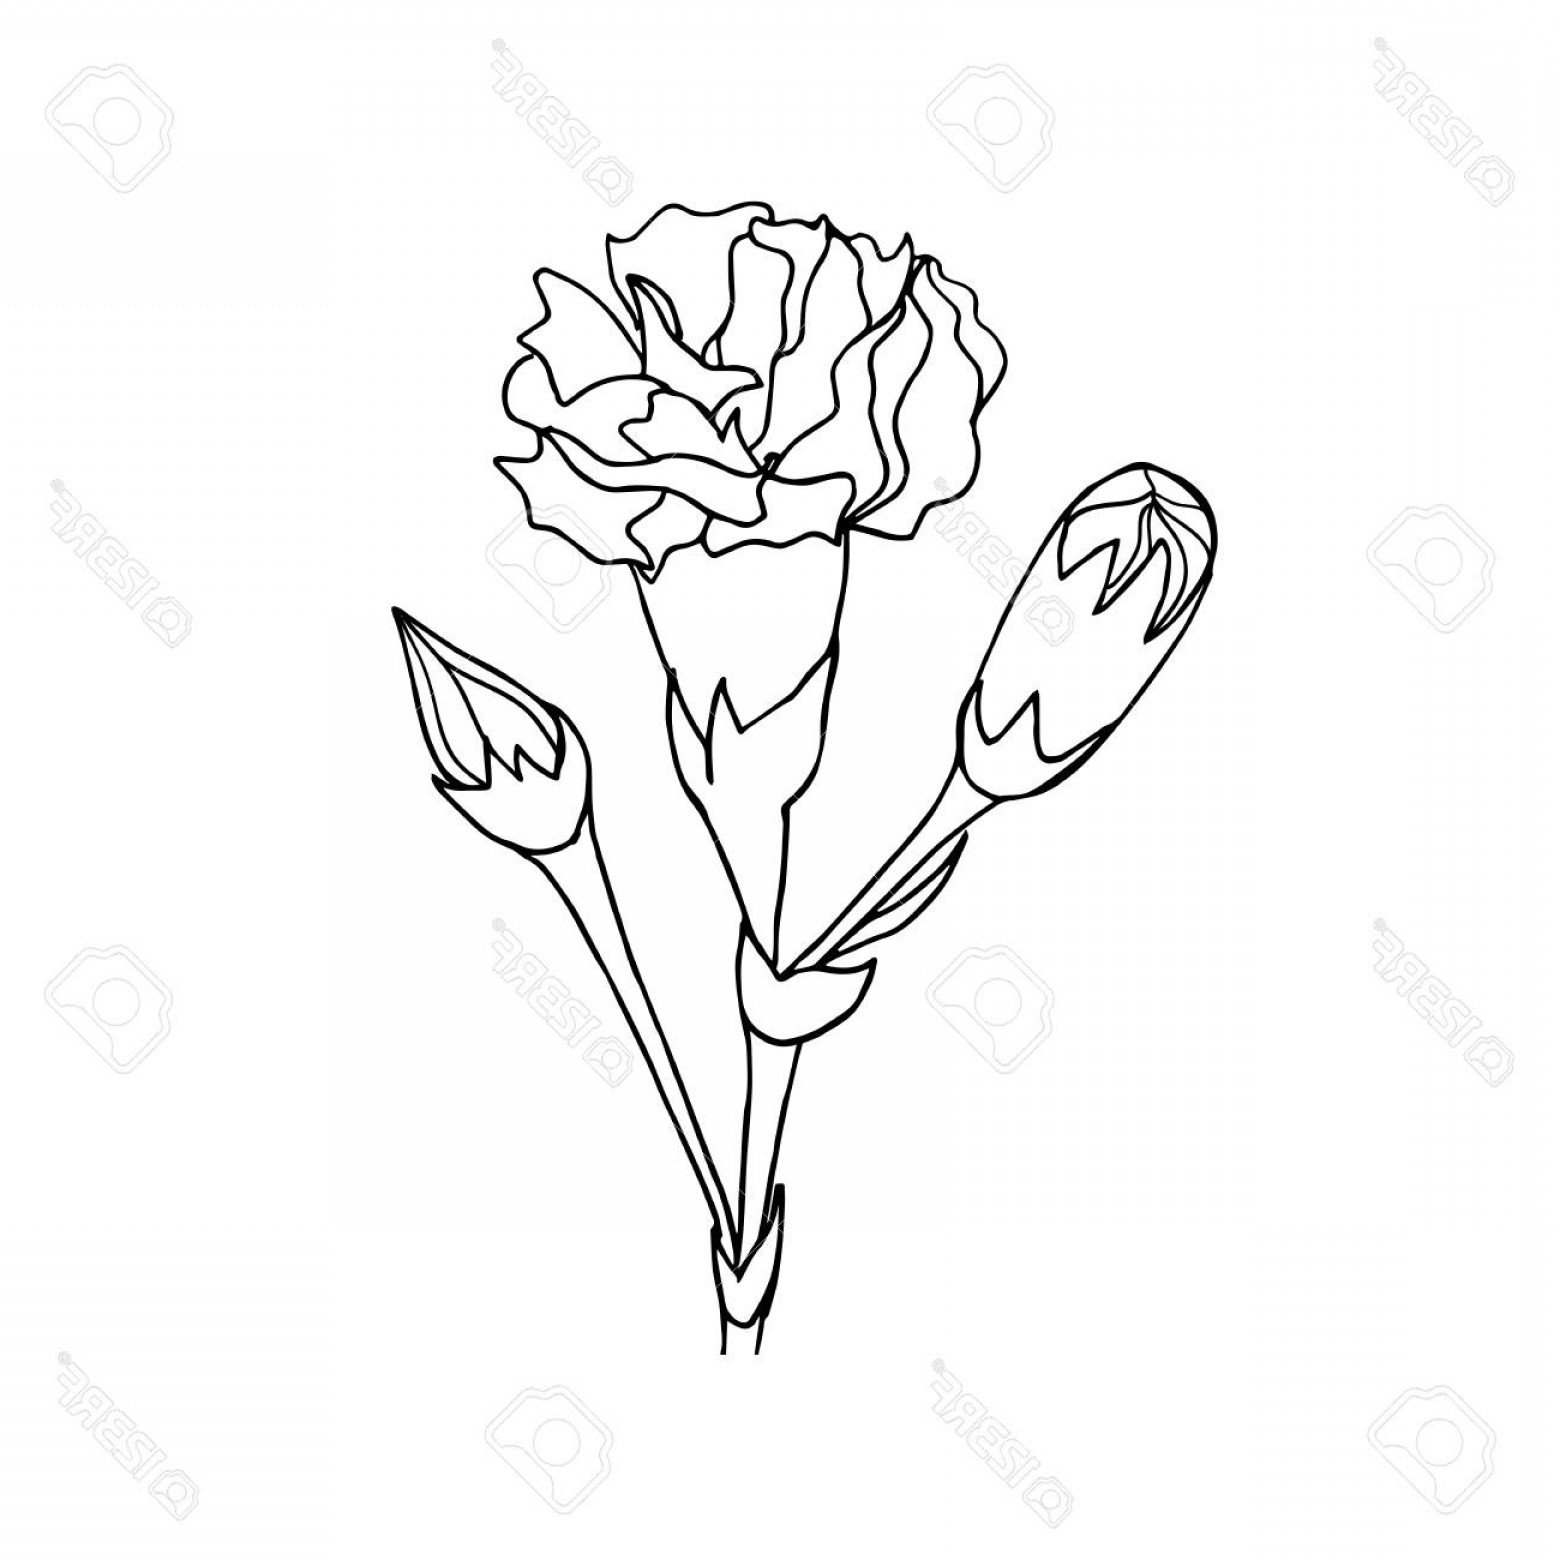 Photostock Vector Black And White Ink Hand Drawn Vector.